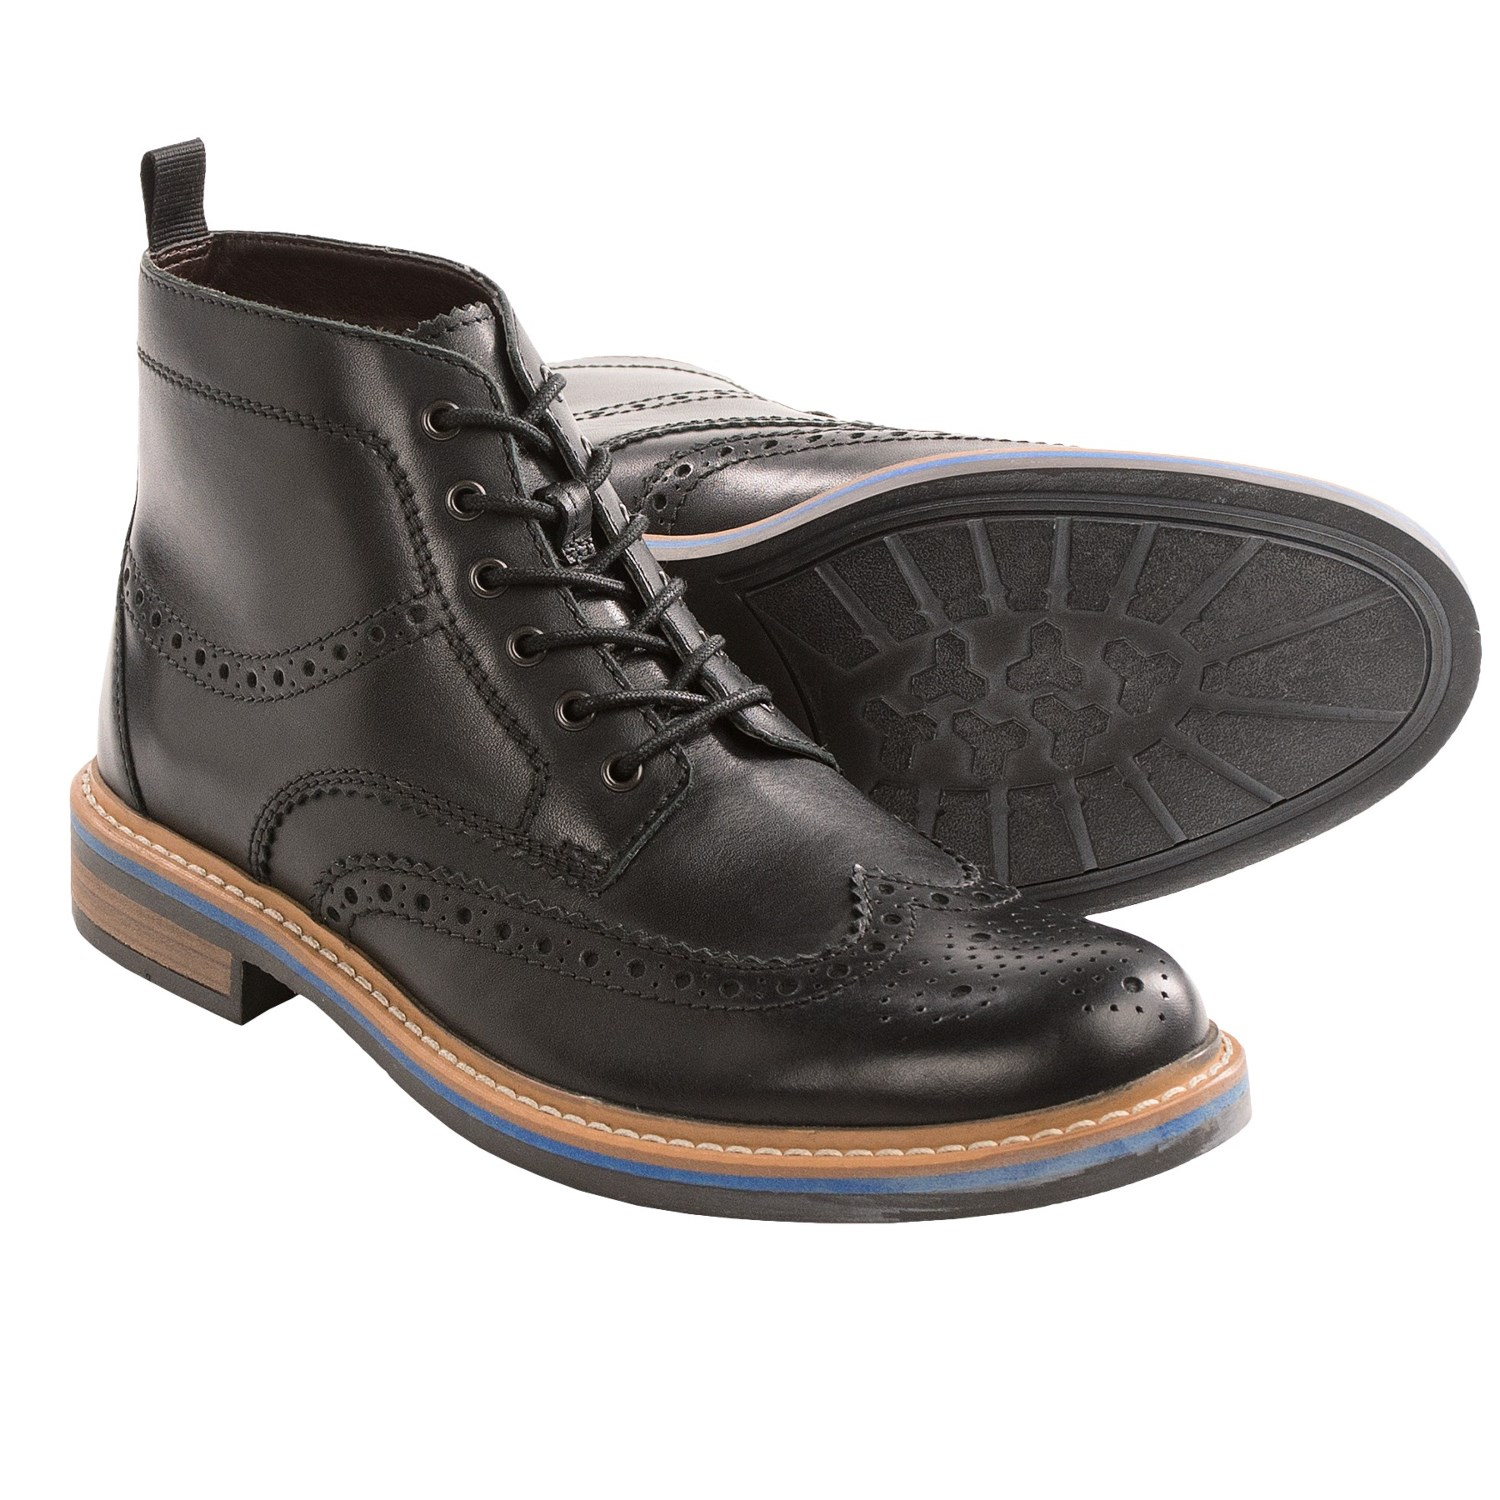 clarks darby rise wingtip boots for 8659g save 28